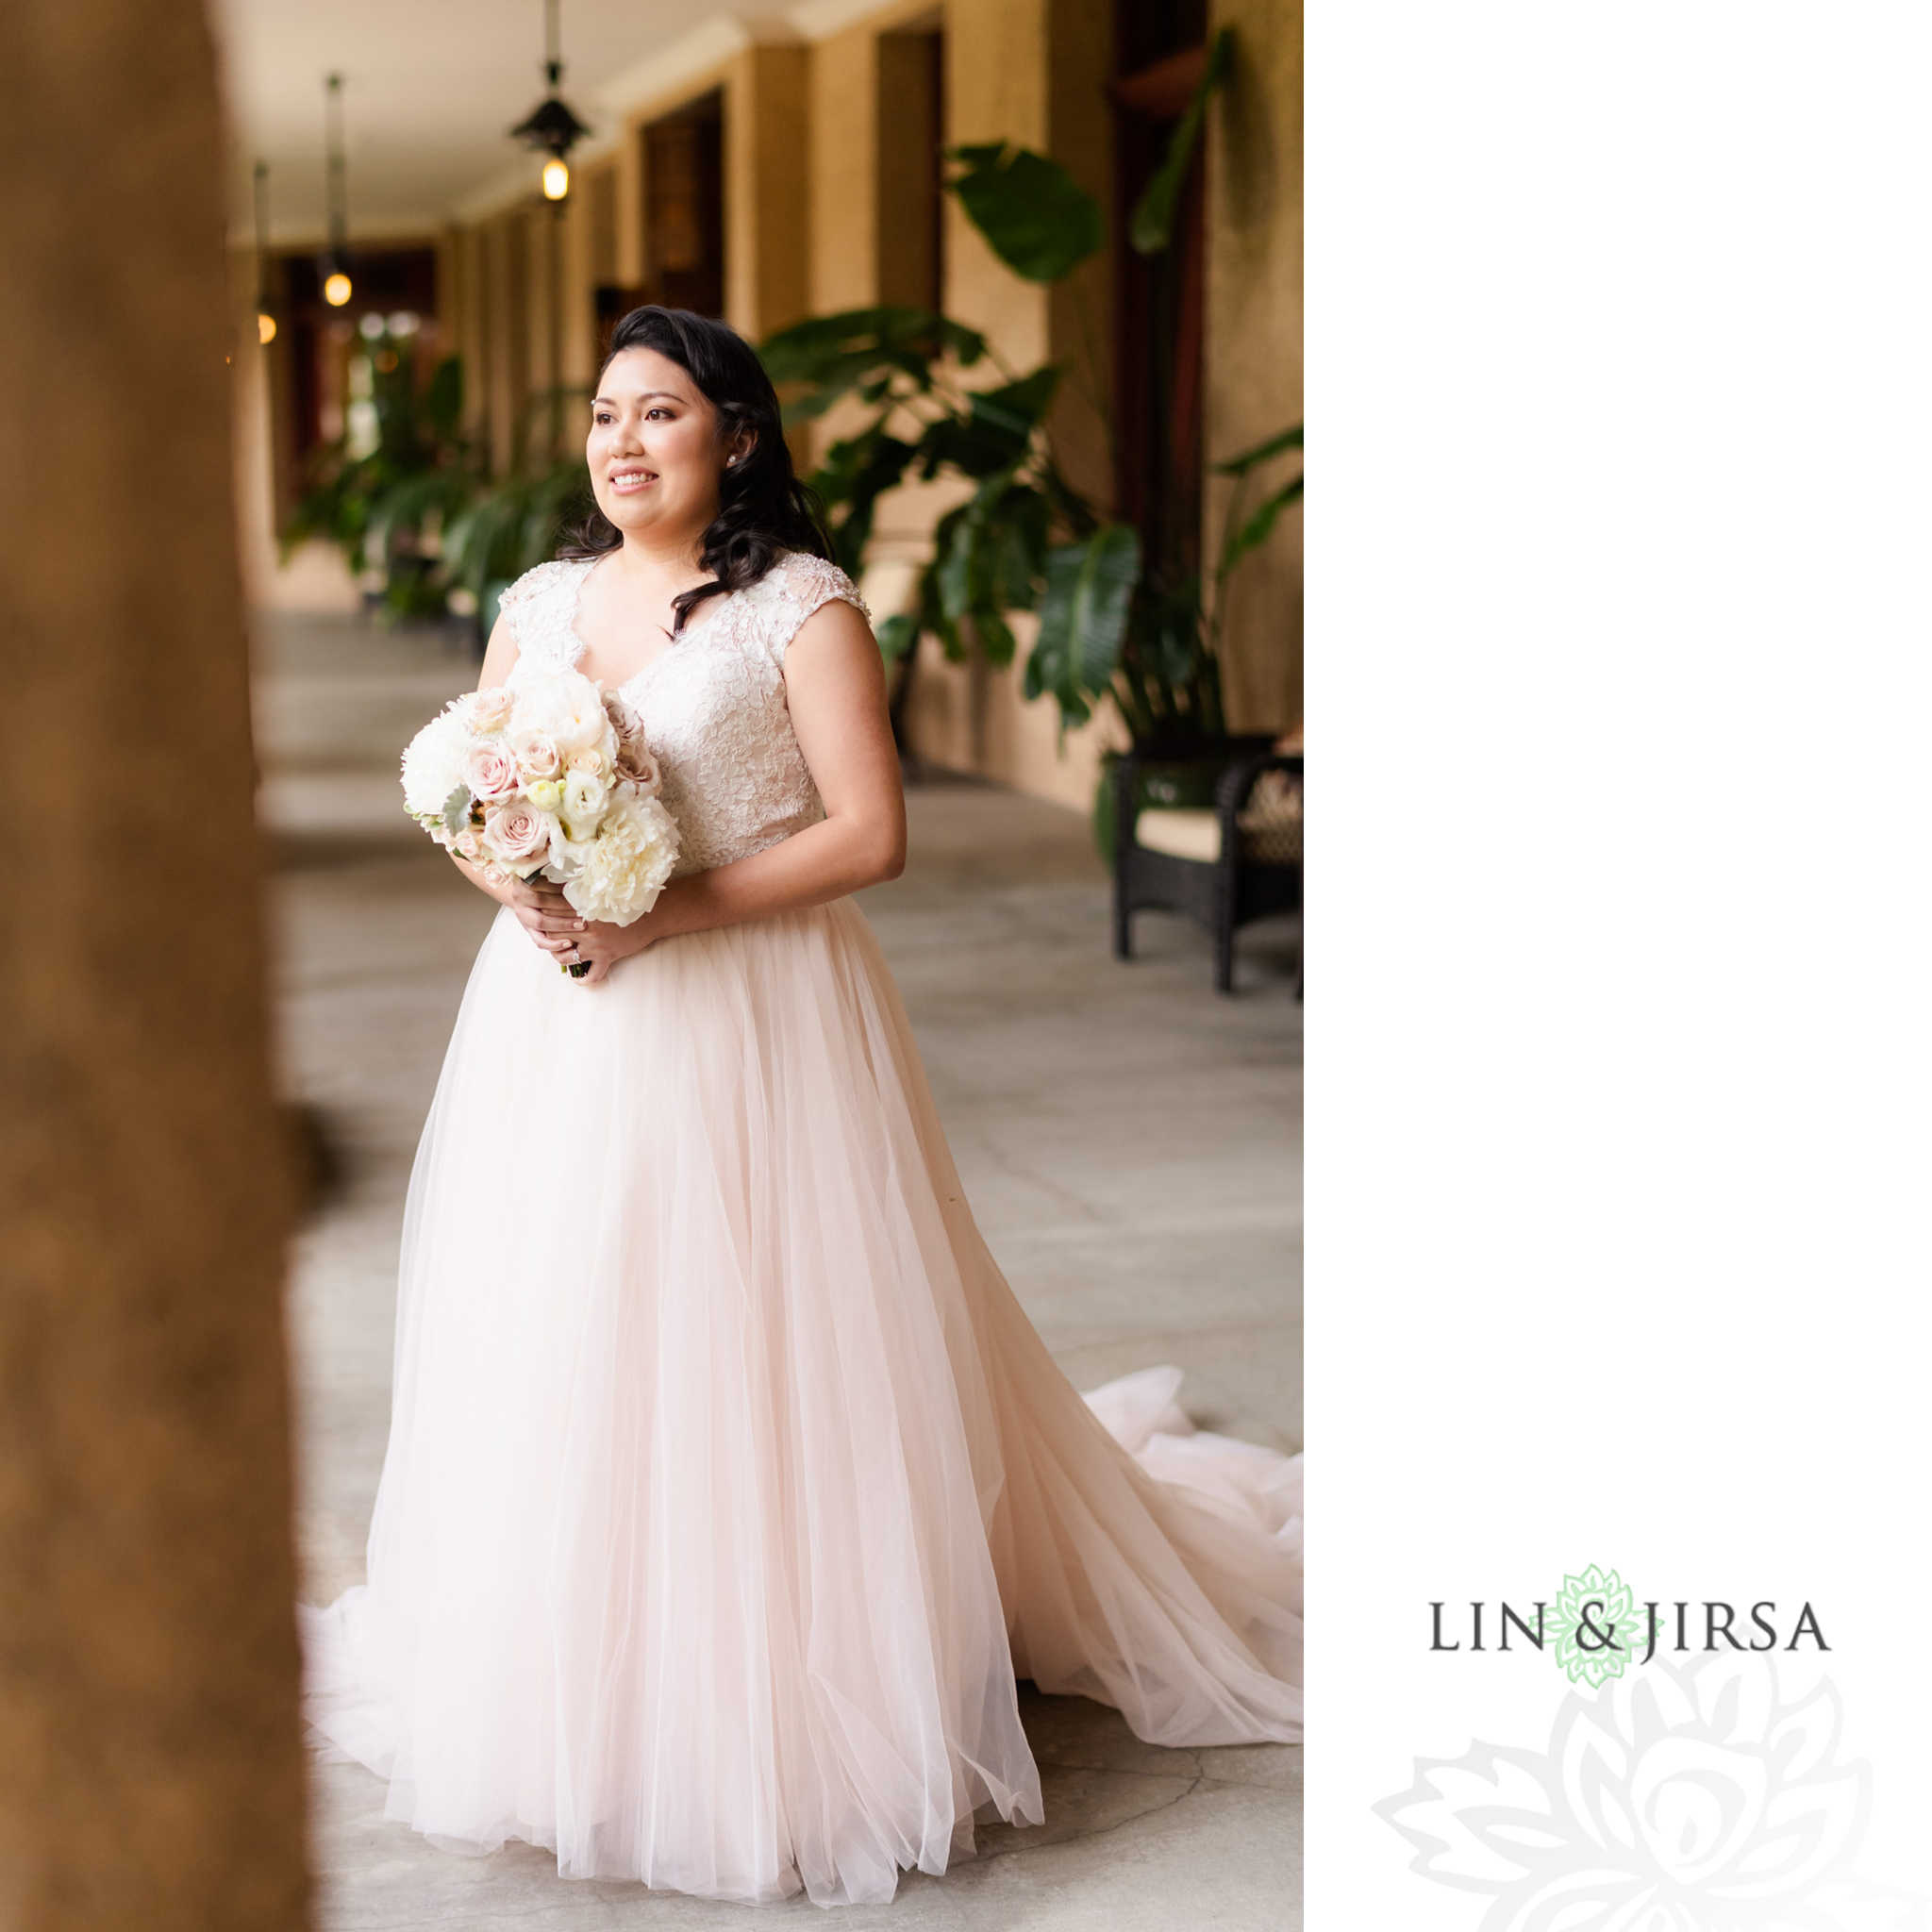 04 Castle Green Pasadena Los Angeles Wedding Photographer